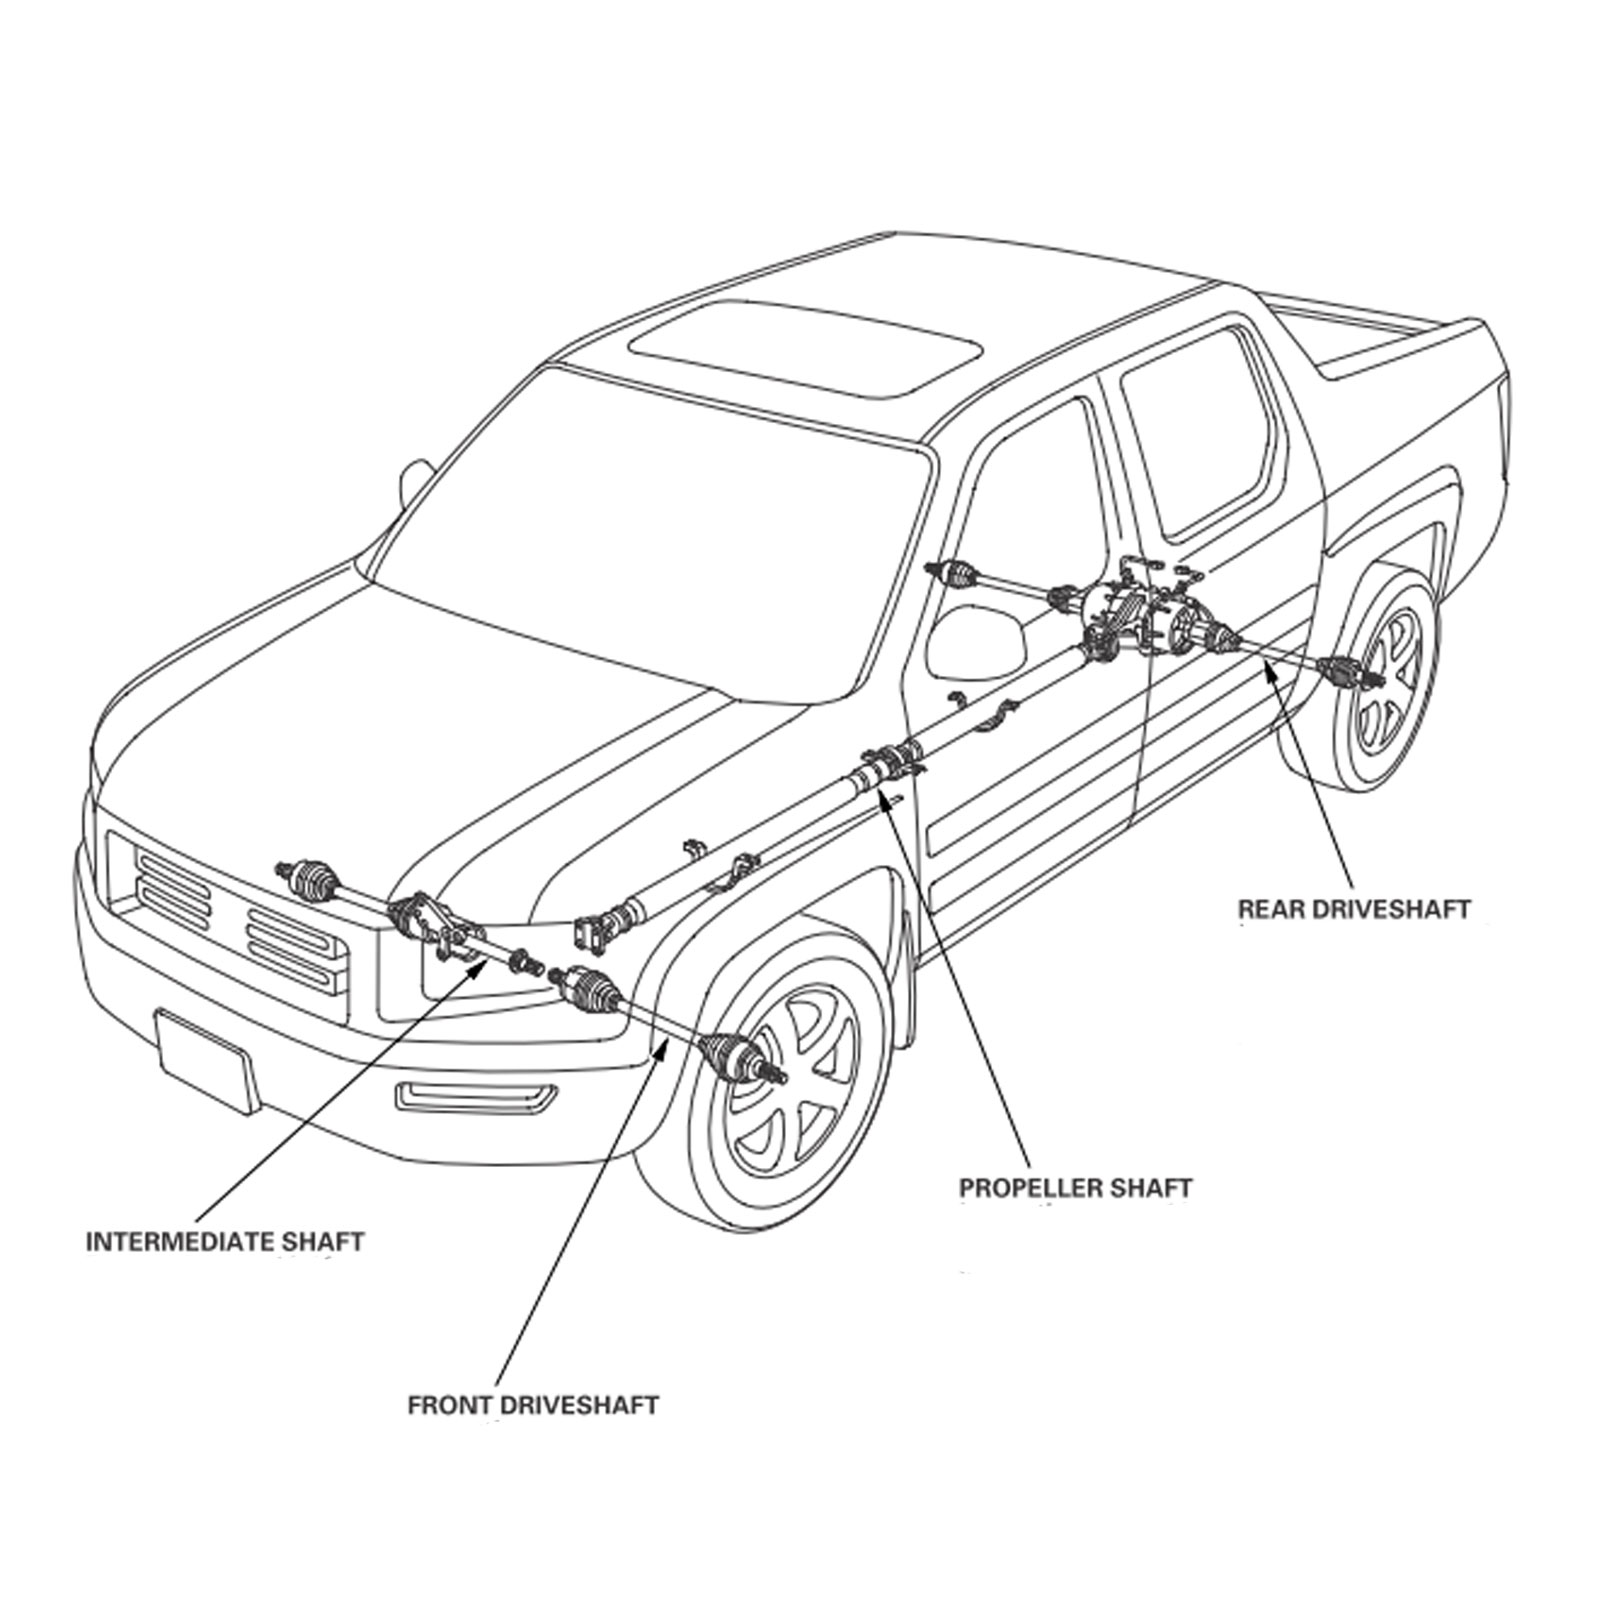 plete rear drive shaft assembly for 08 10 honda cr v 4wd RC in Snow a longer shaft experiences more torque so often a long driveshaft may be posed of two pieces these are types of drive shafts have a driveshaft support